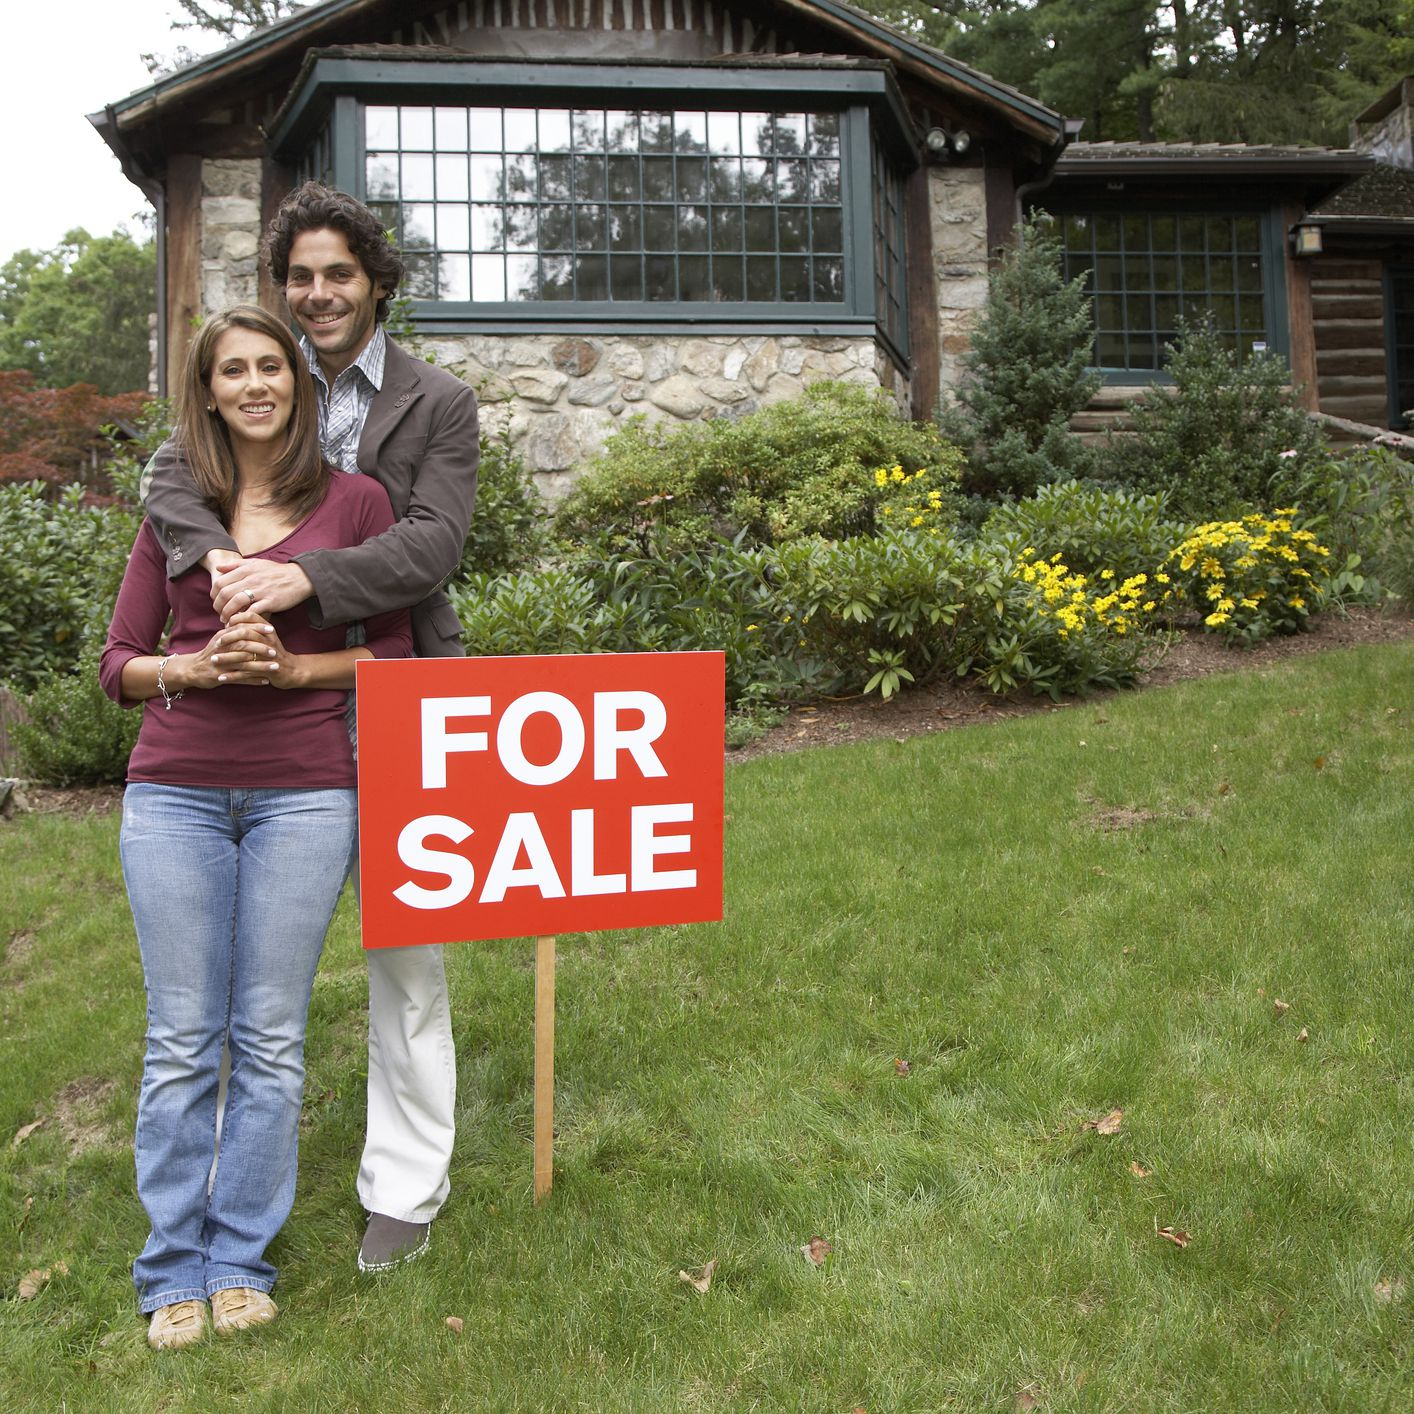 20-Somethings Are Prepping to Buy a Home